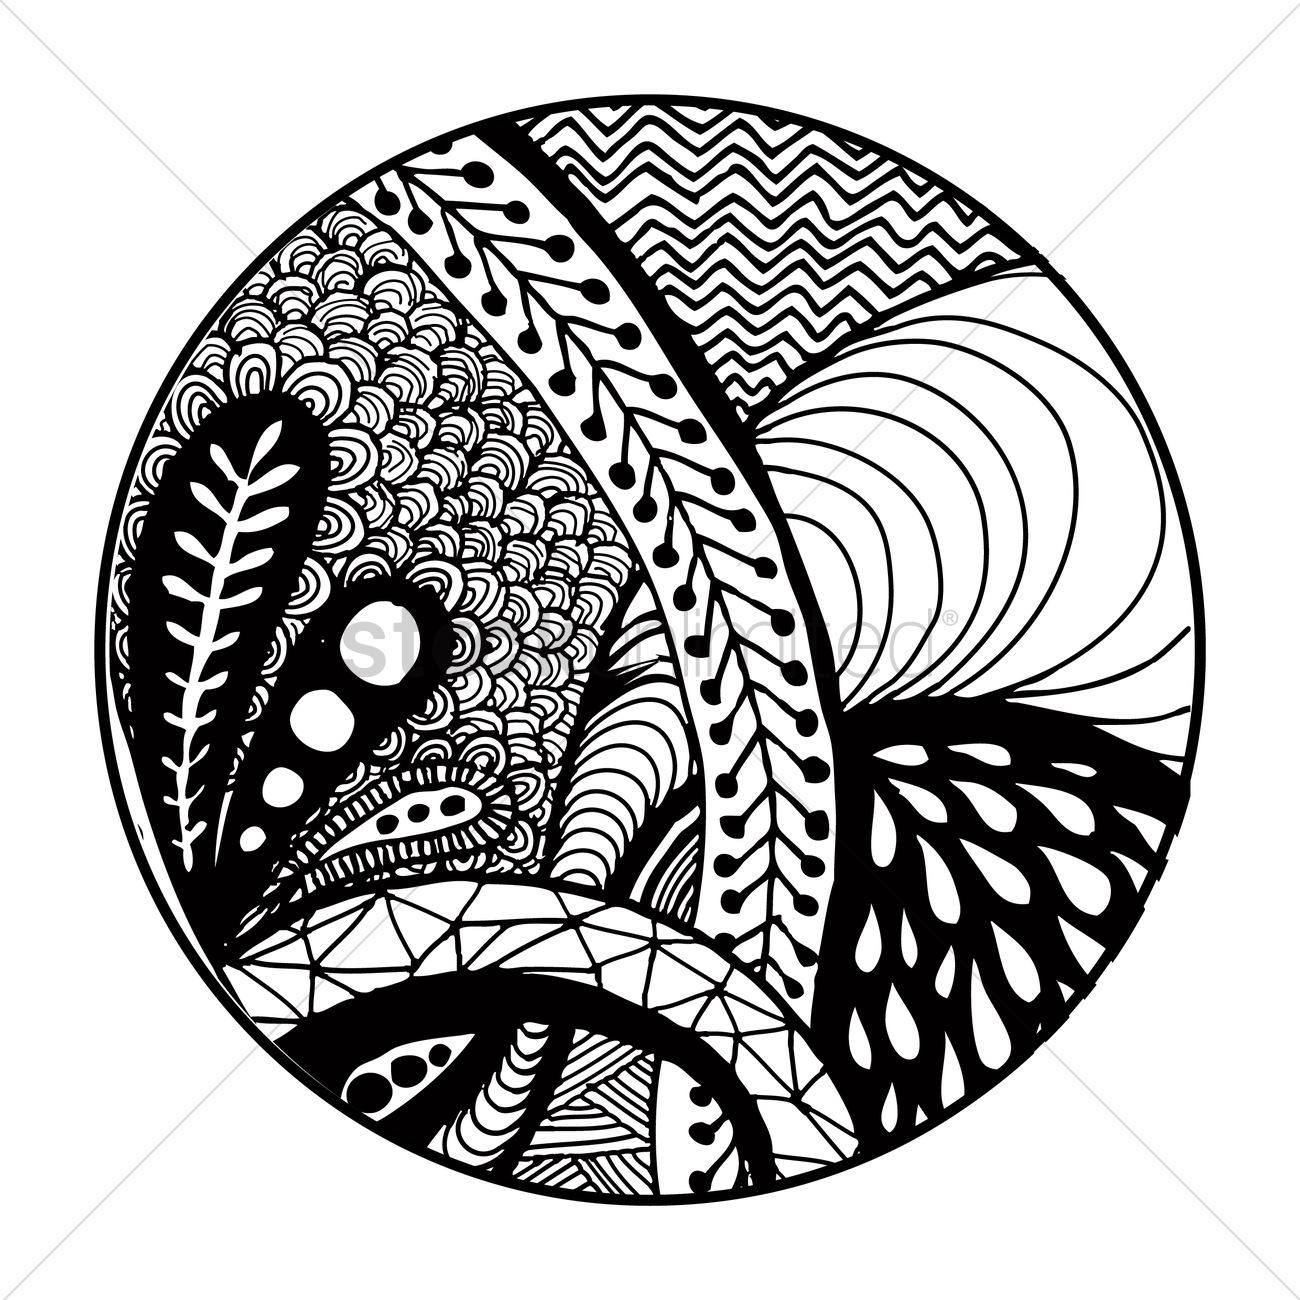 Decorative pattern design vector image 1544080 for Images of design